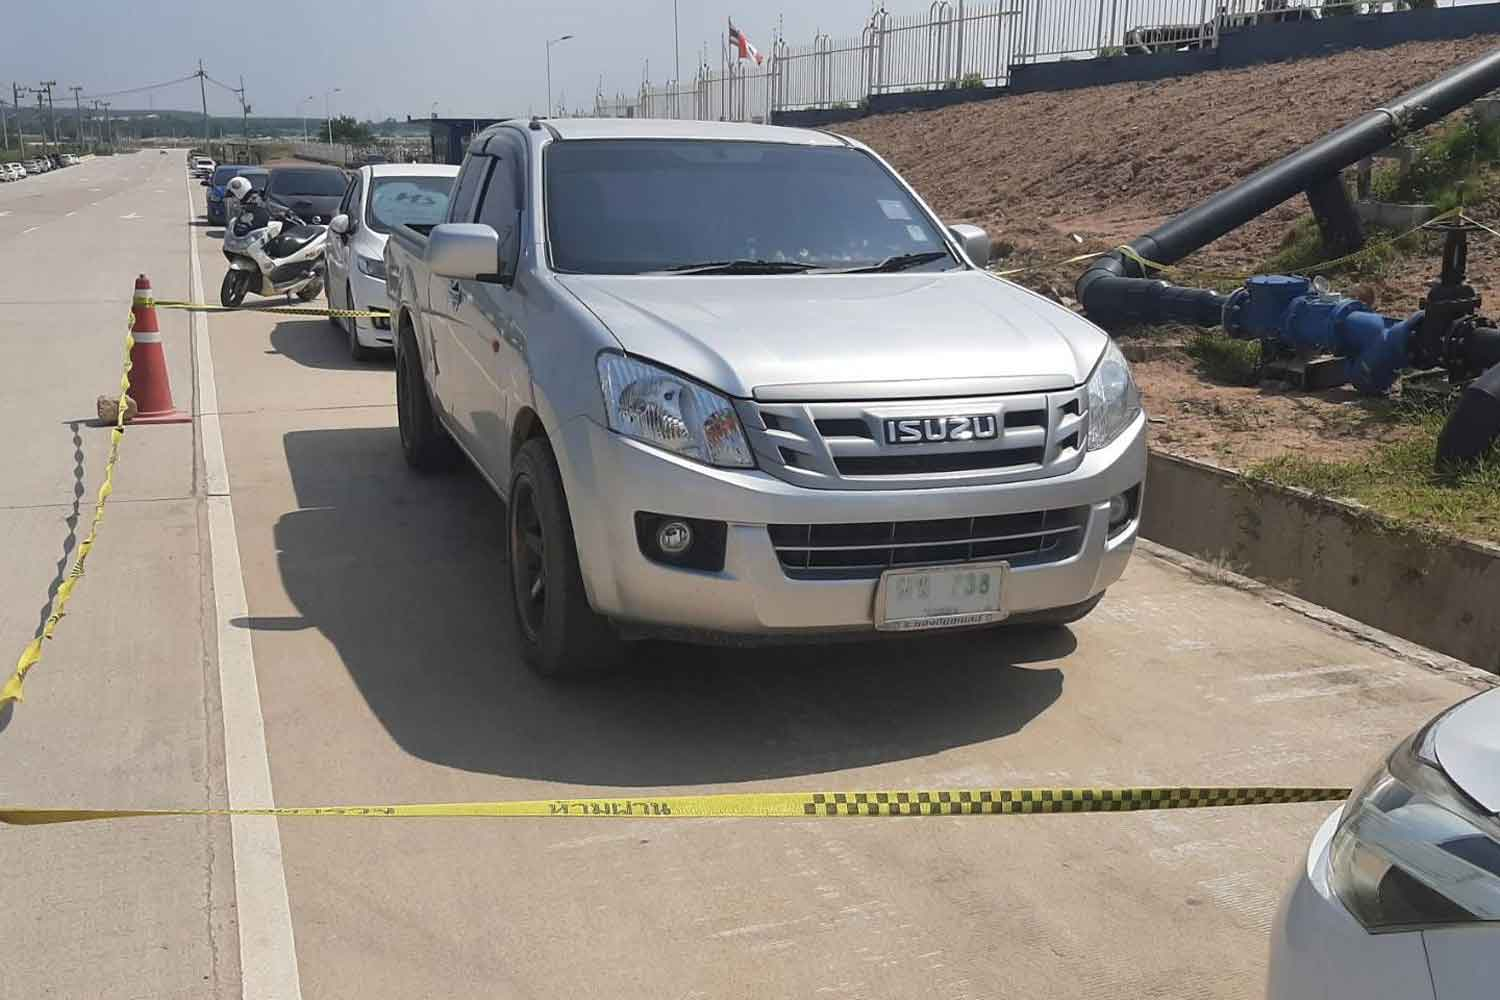 The pickup truck that carried the three escapees, two Thais and an American, away from the Pattaya Court on Monday, found abandoned in Si Racha district, Chon Buri, on Tuesday afternoon. (Photo by Chaiyot Pupattanapong)